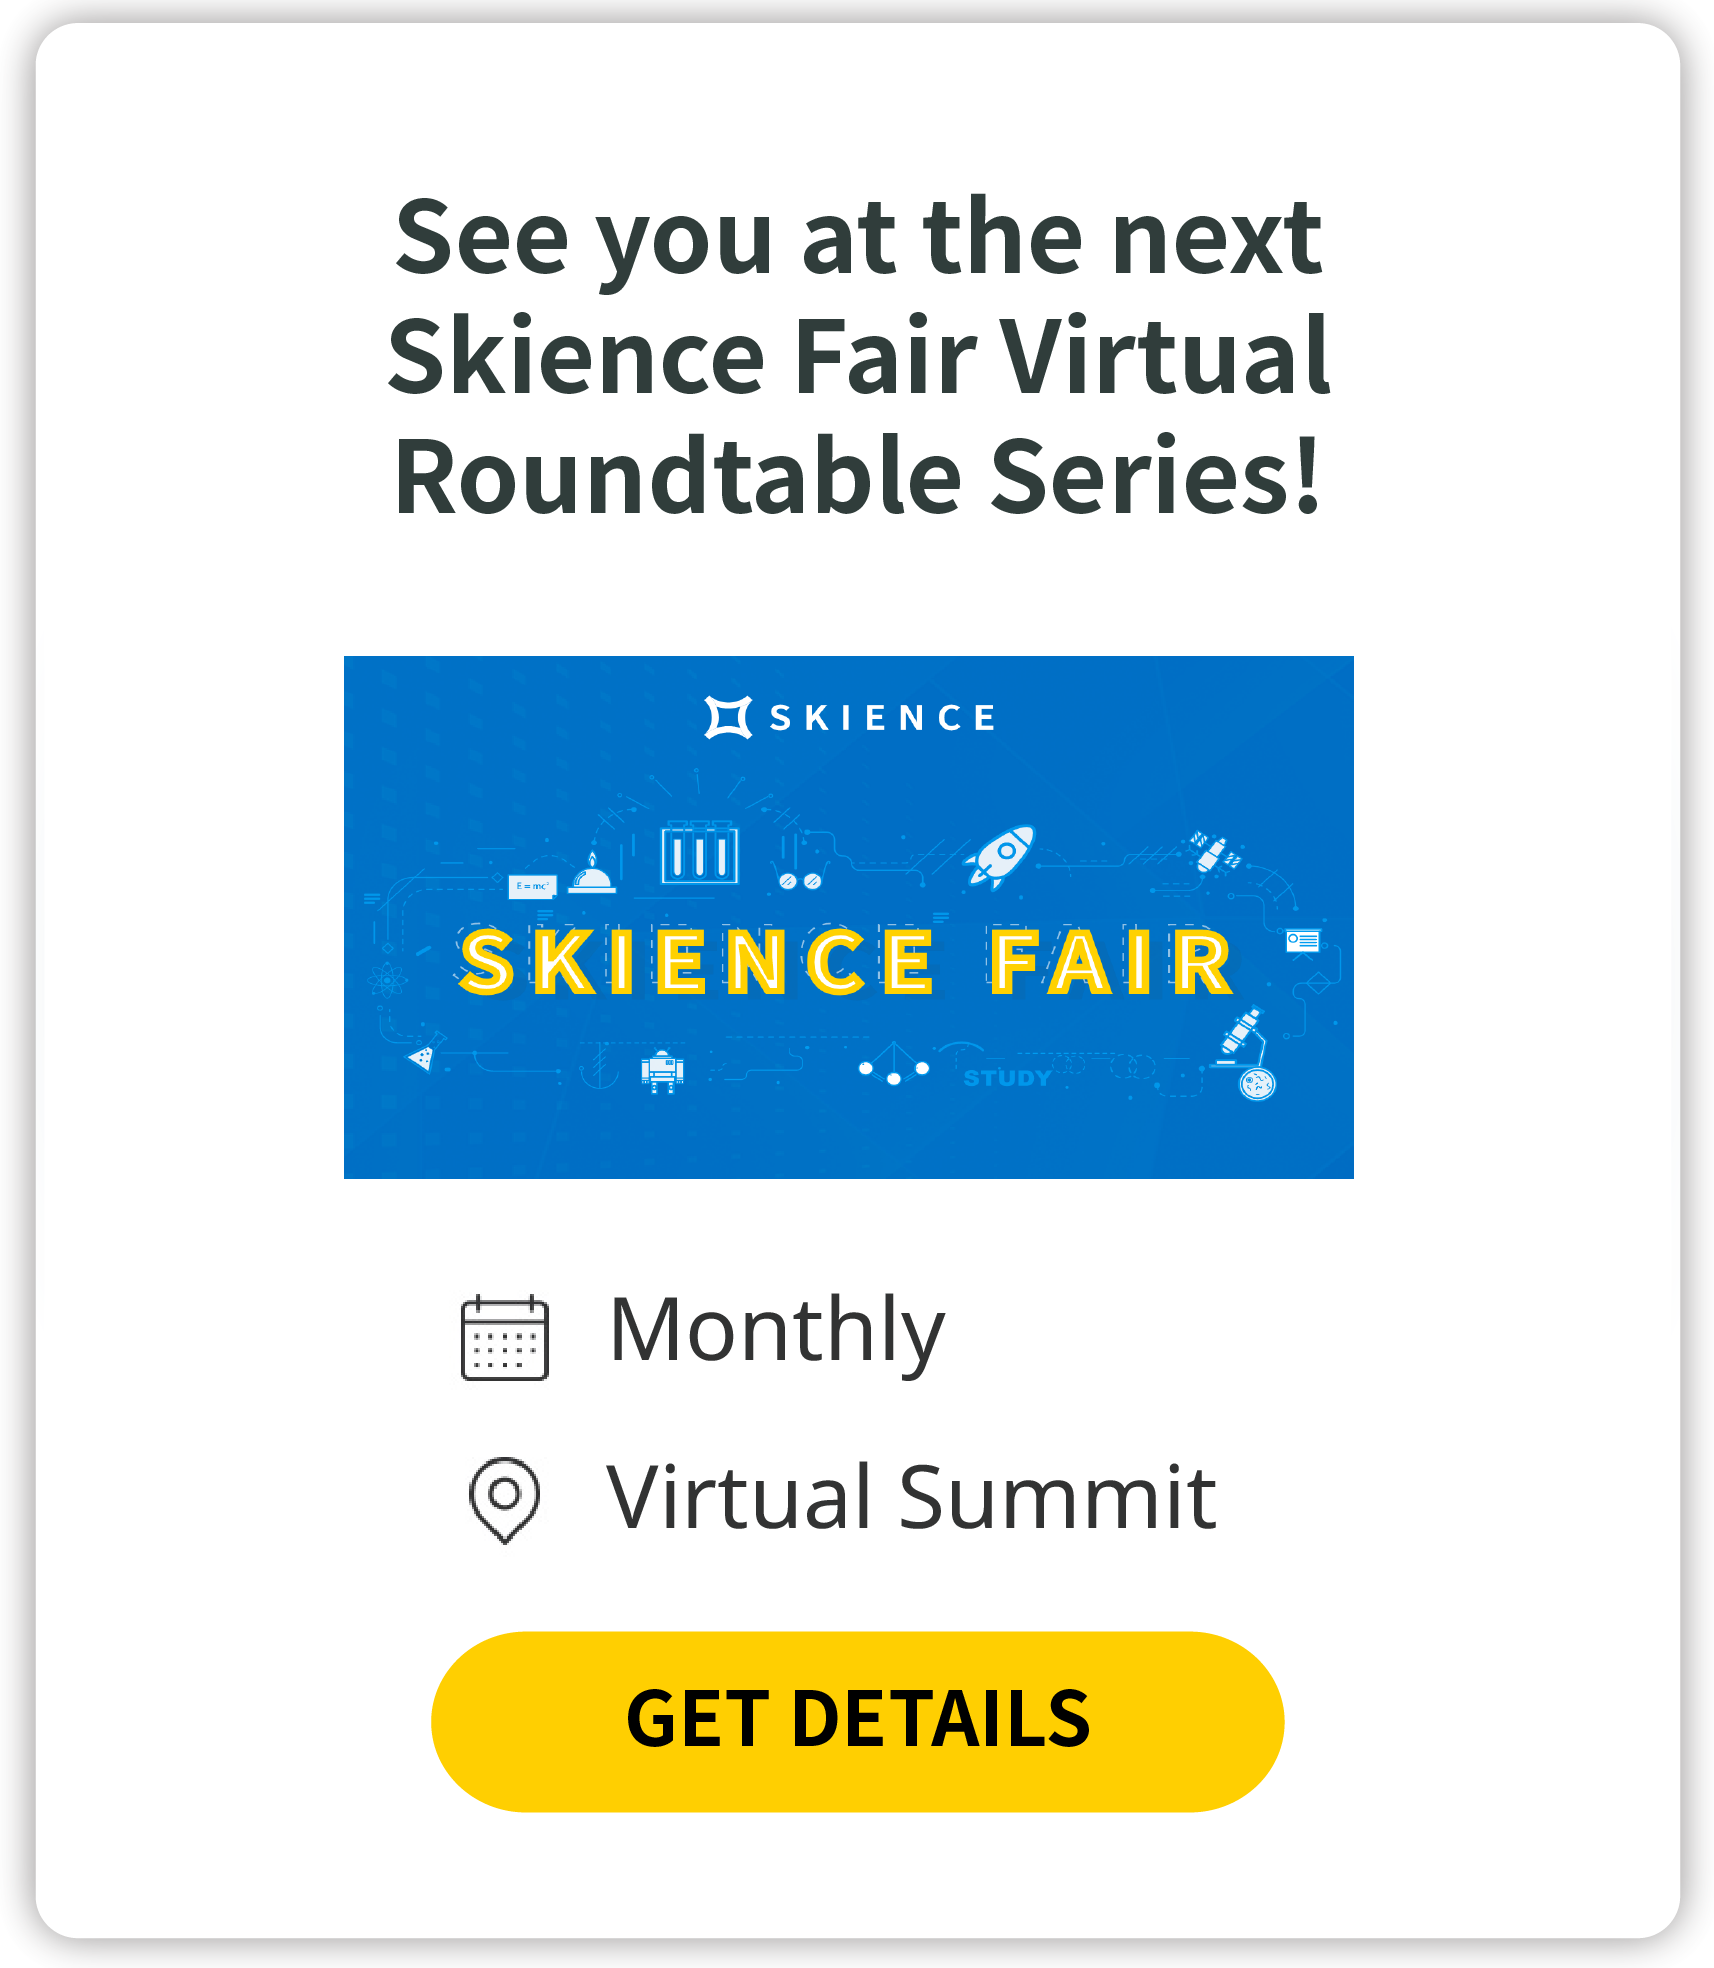 Skience Fair